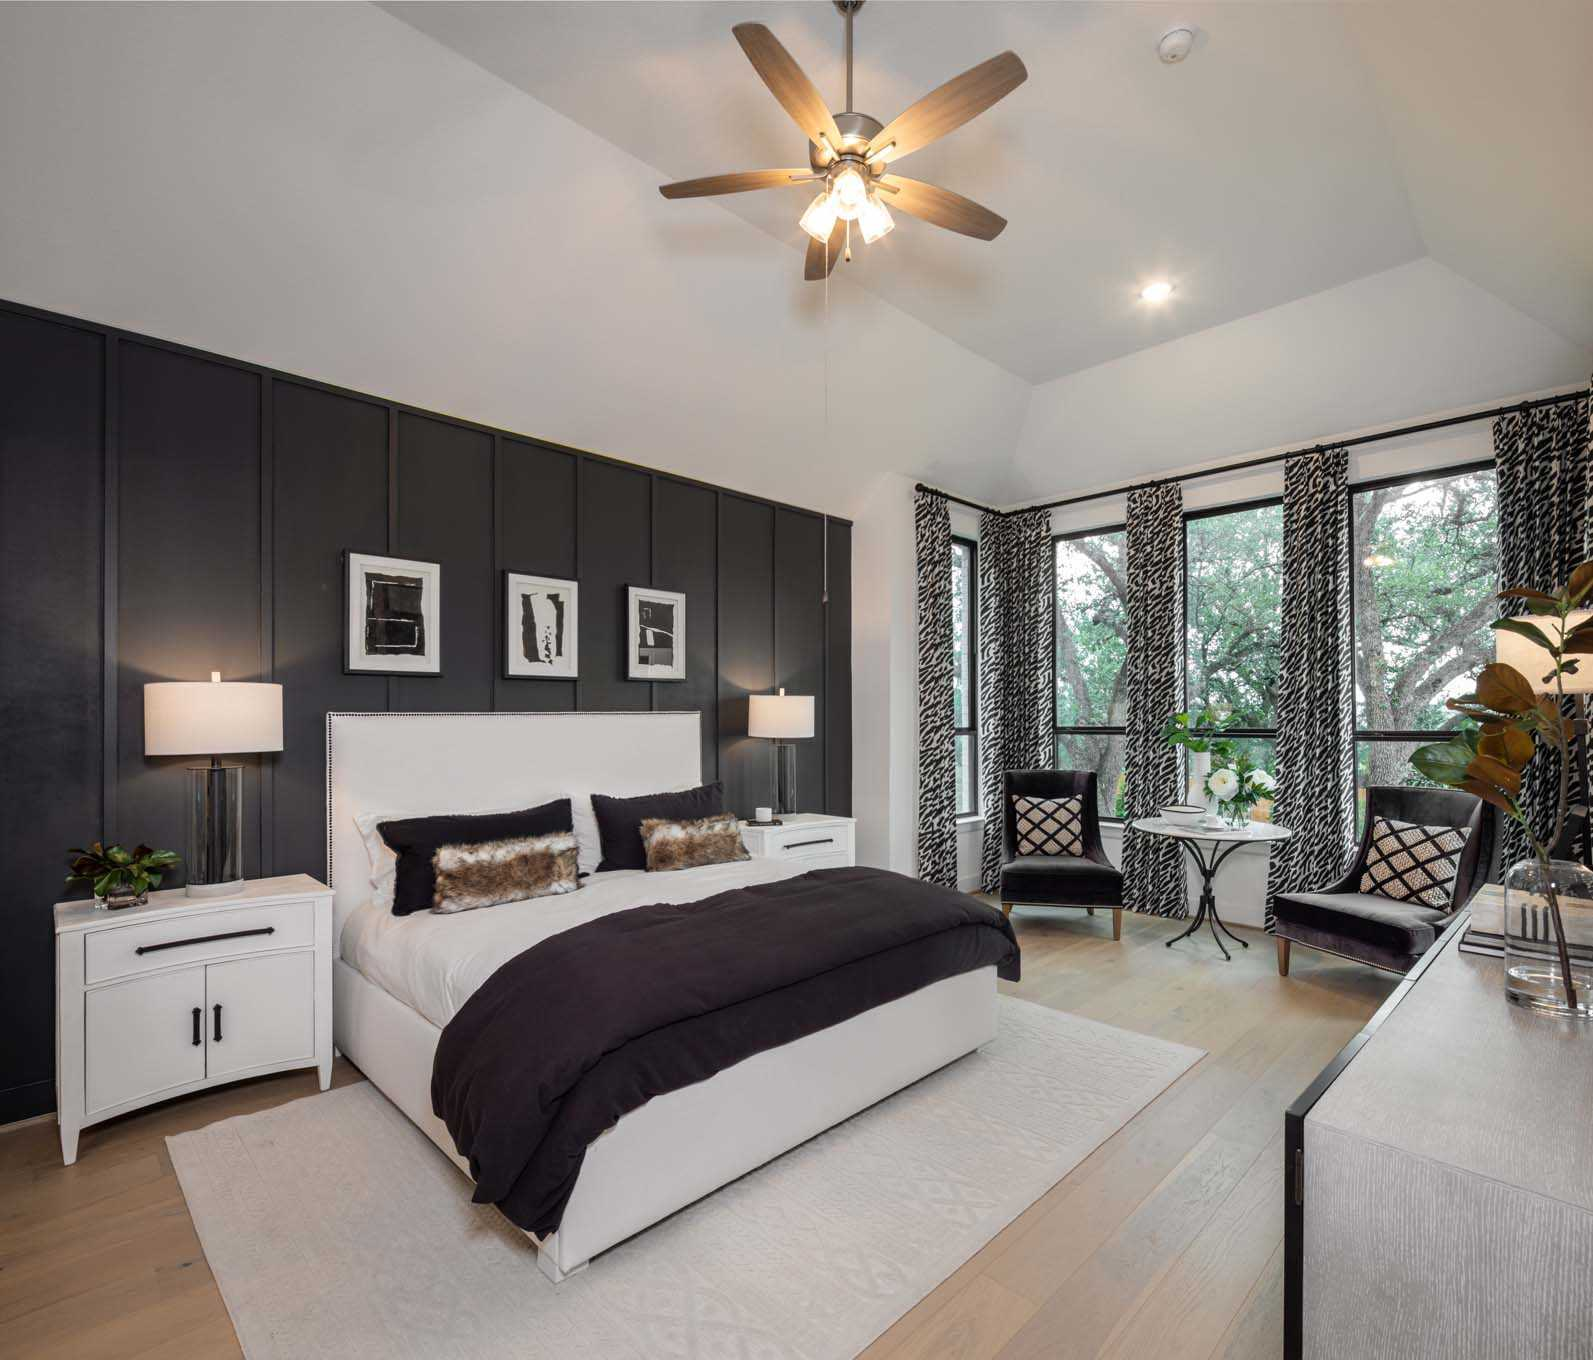 Bedroom featured in the Plan 272 By Highland Homes in Dallas, TX